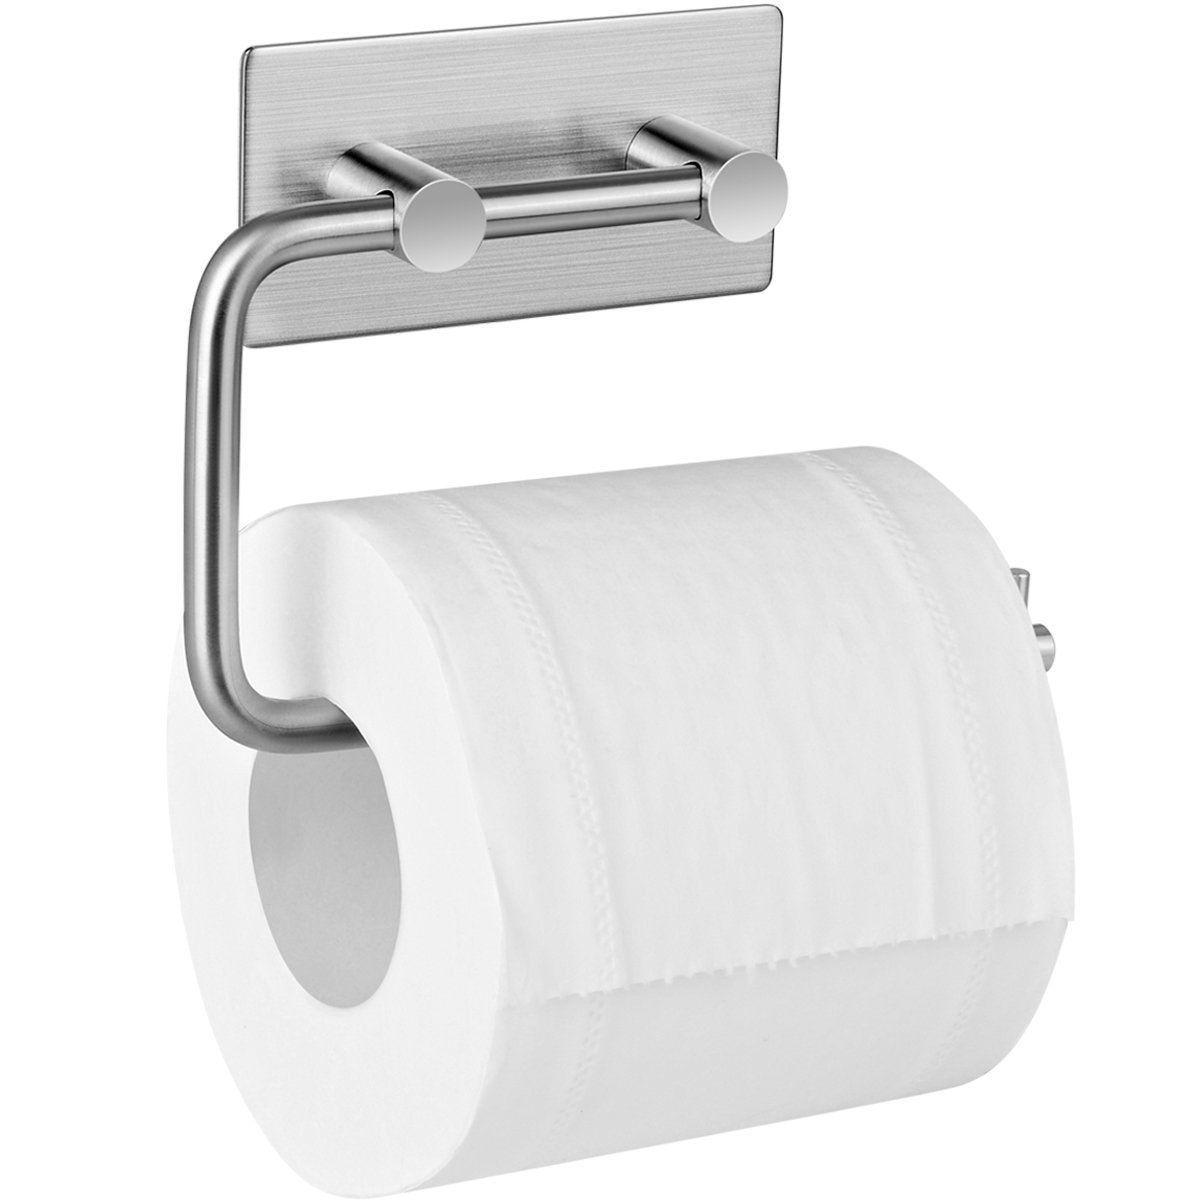 Toilet Paper Holder Toilet Paper Holder Without Drilling Paper